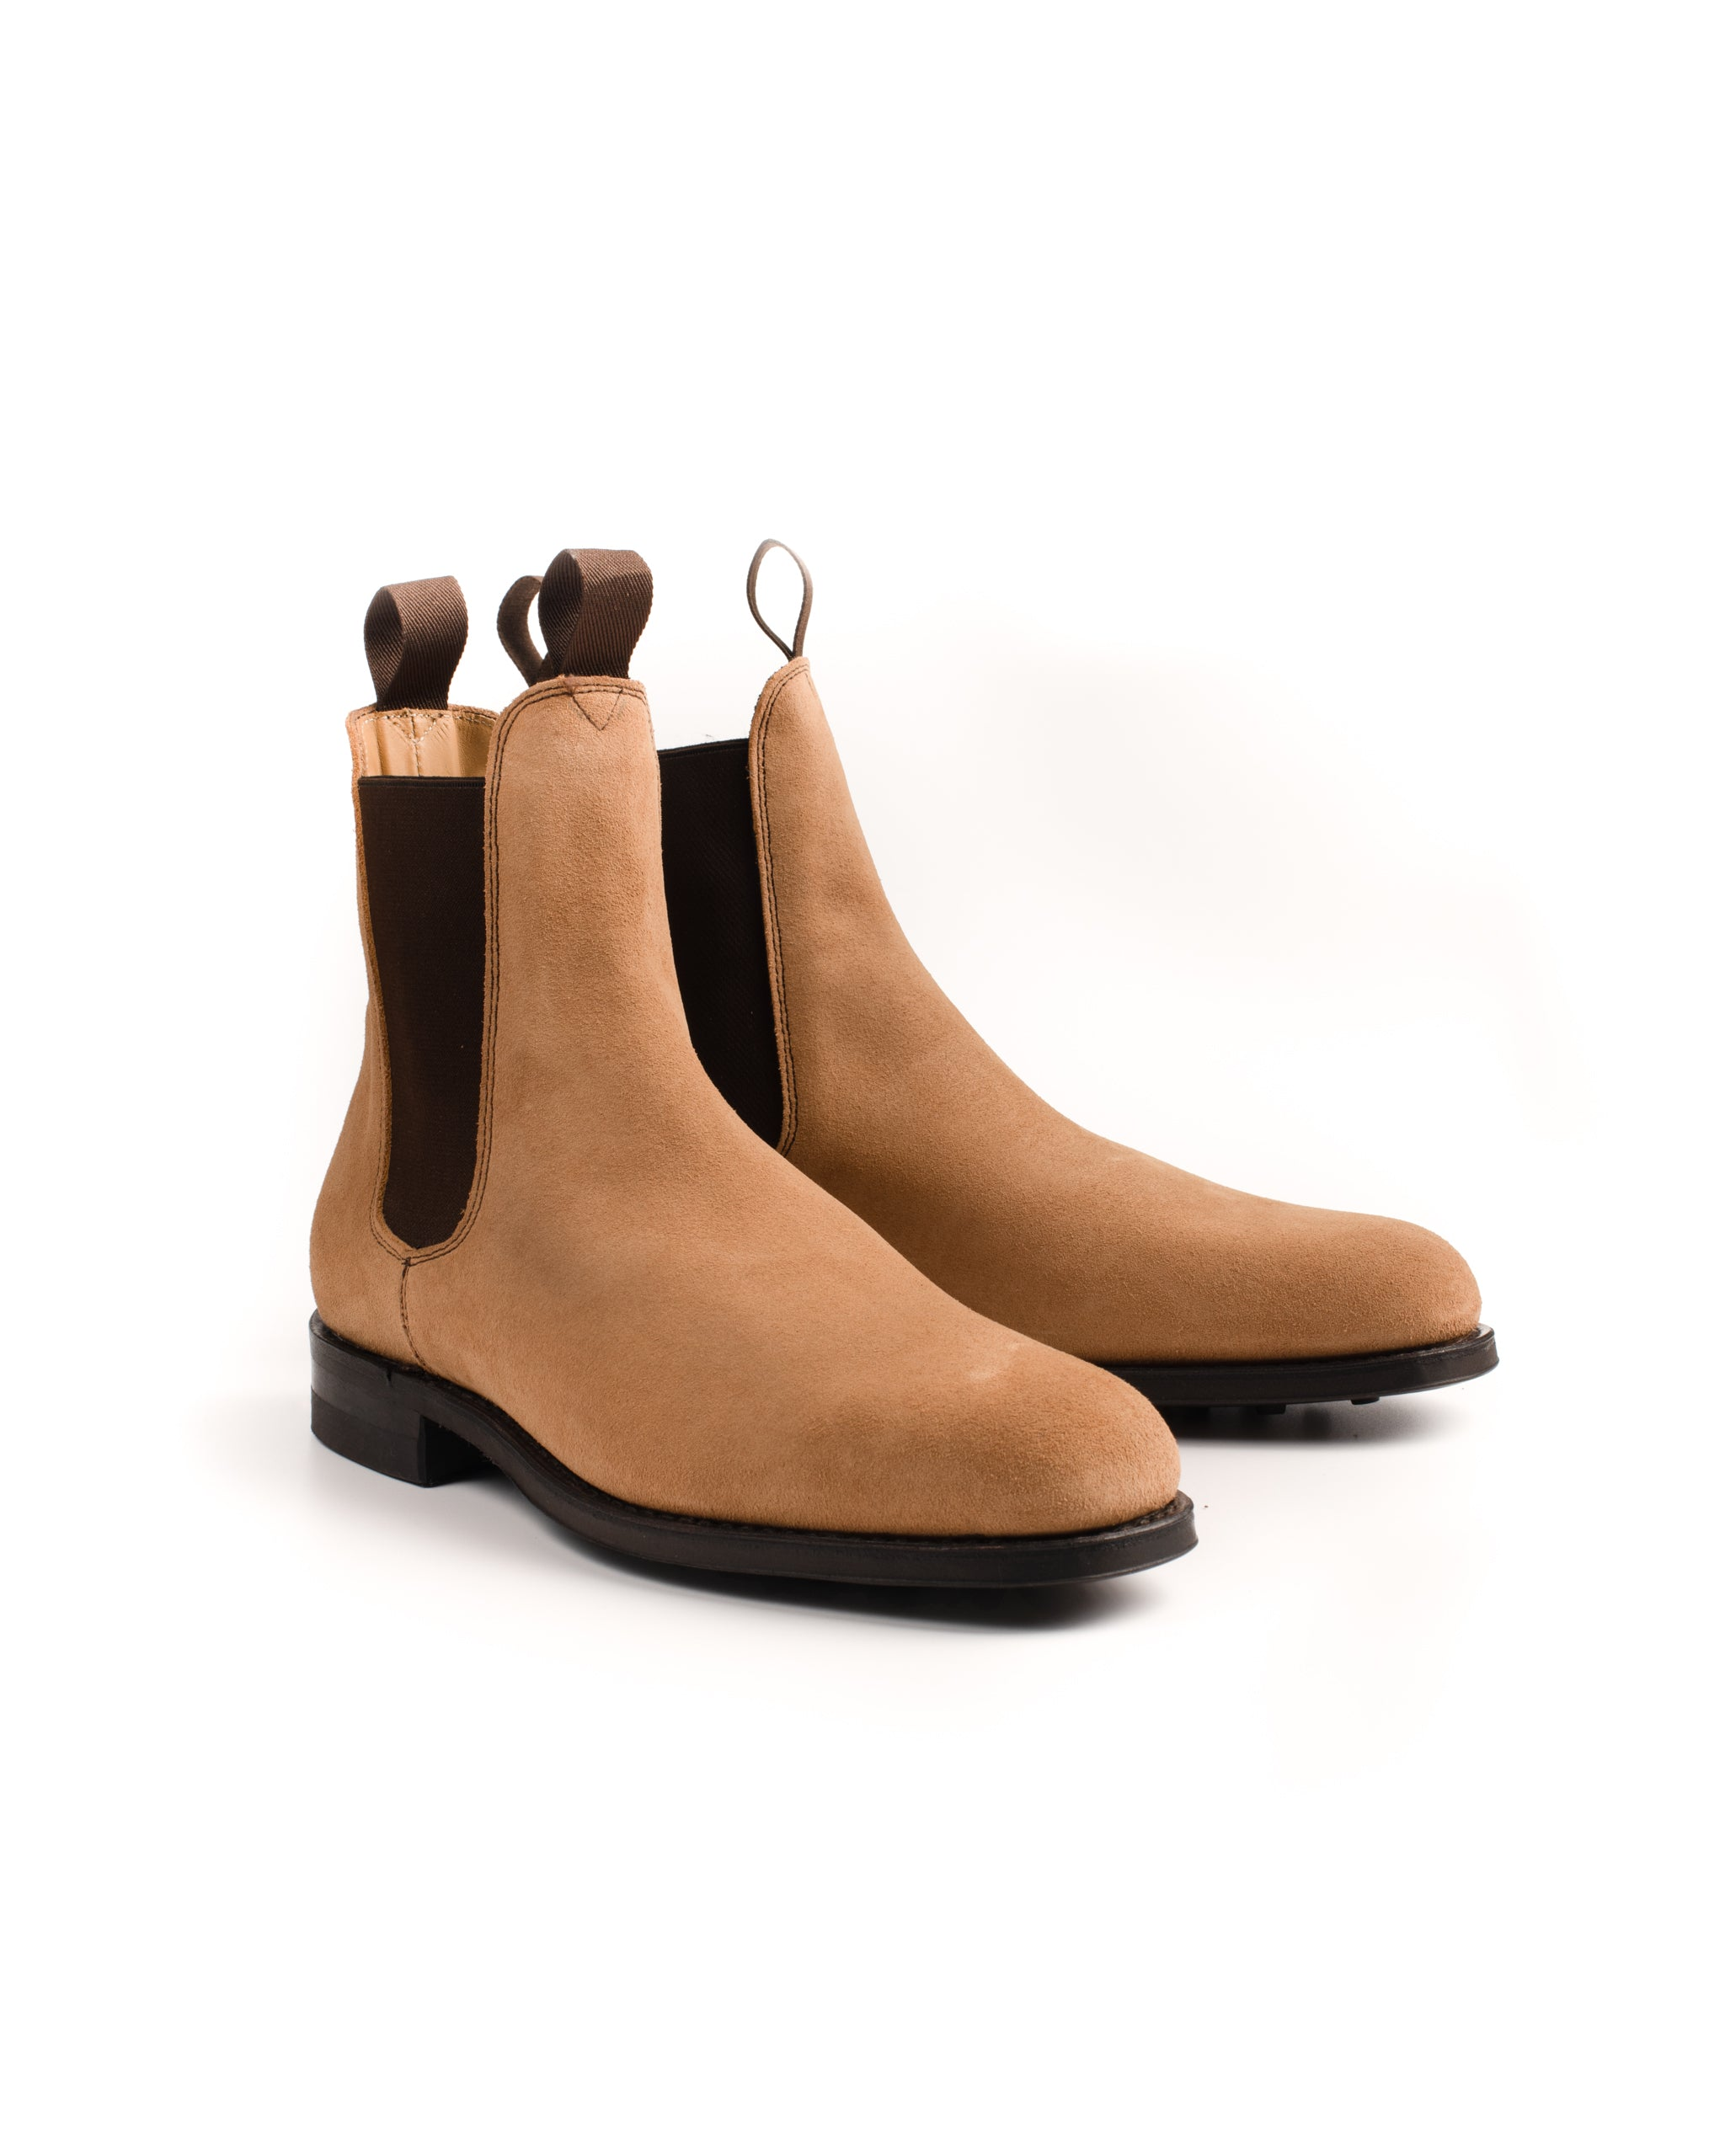 Chelsea Boot // Suede // Camel // Dainite Sohle